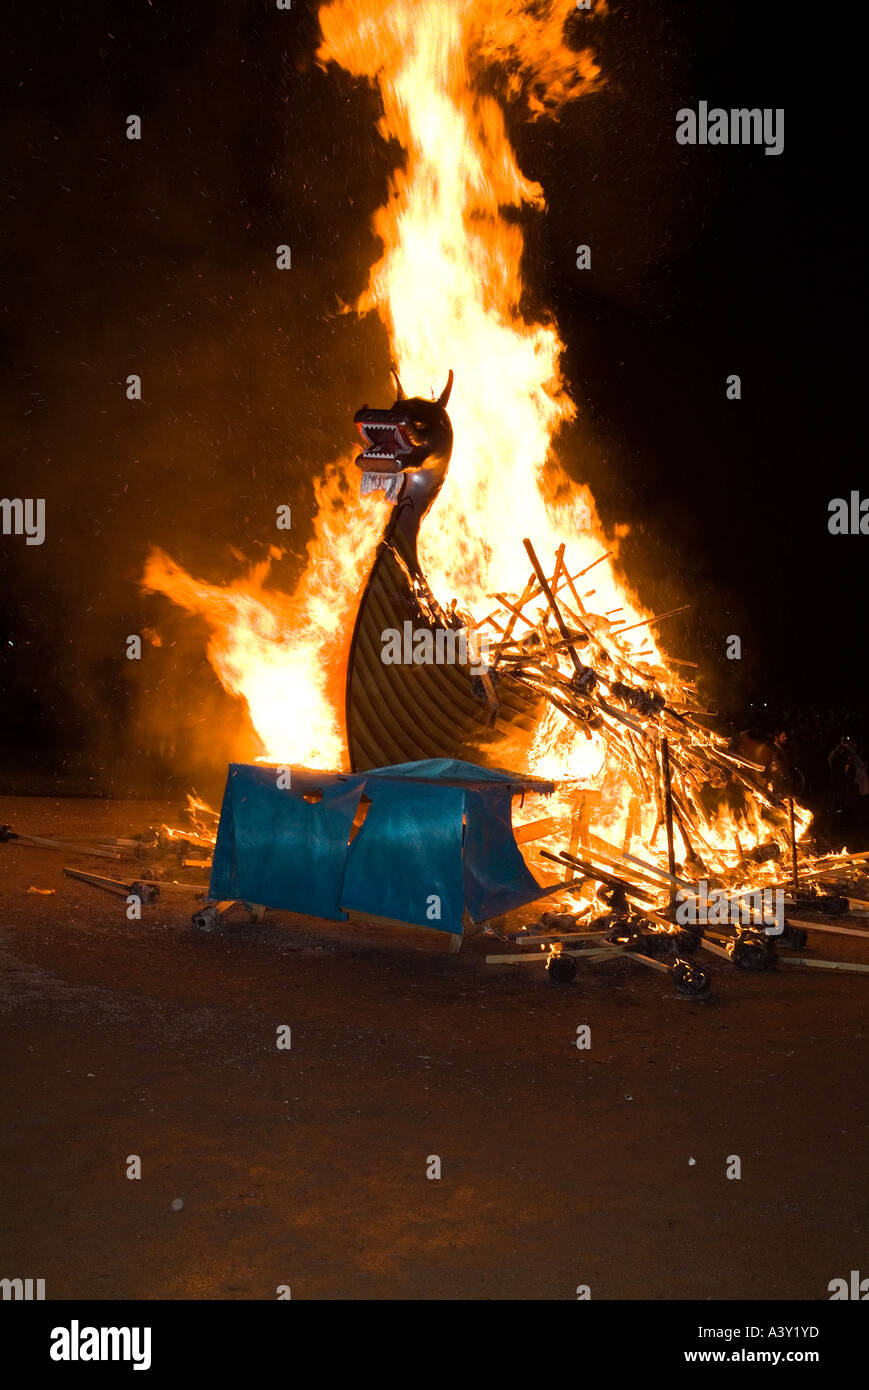 dh Up Helly Aa fire procession LERWICK SHETLAND Viking longship galley Moogi alight at burning site festival - Stock Image